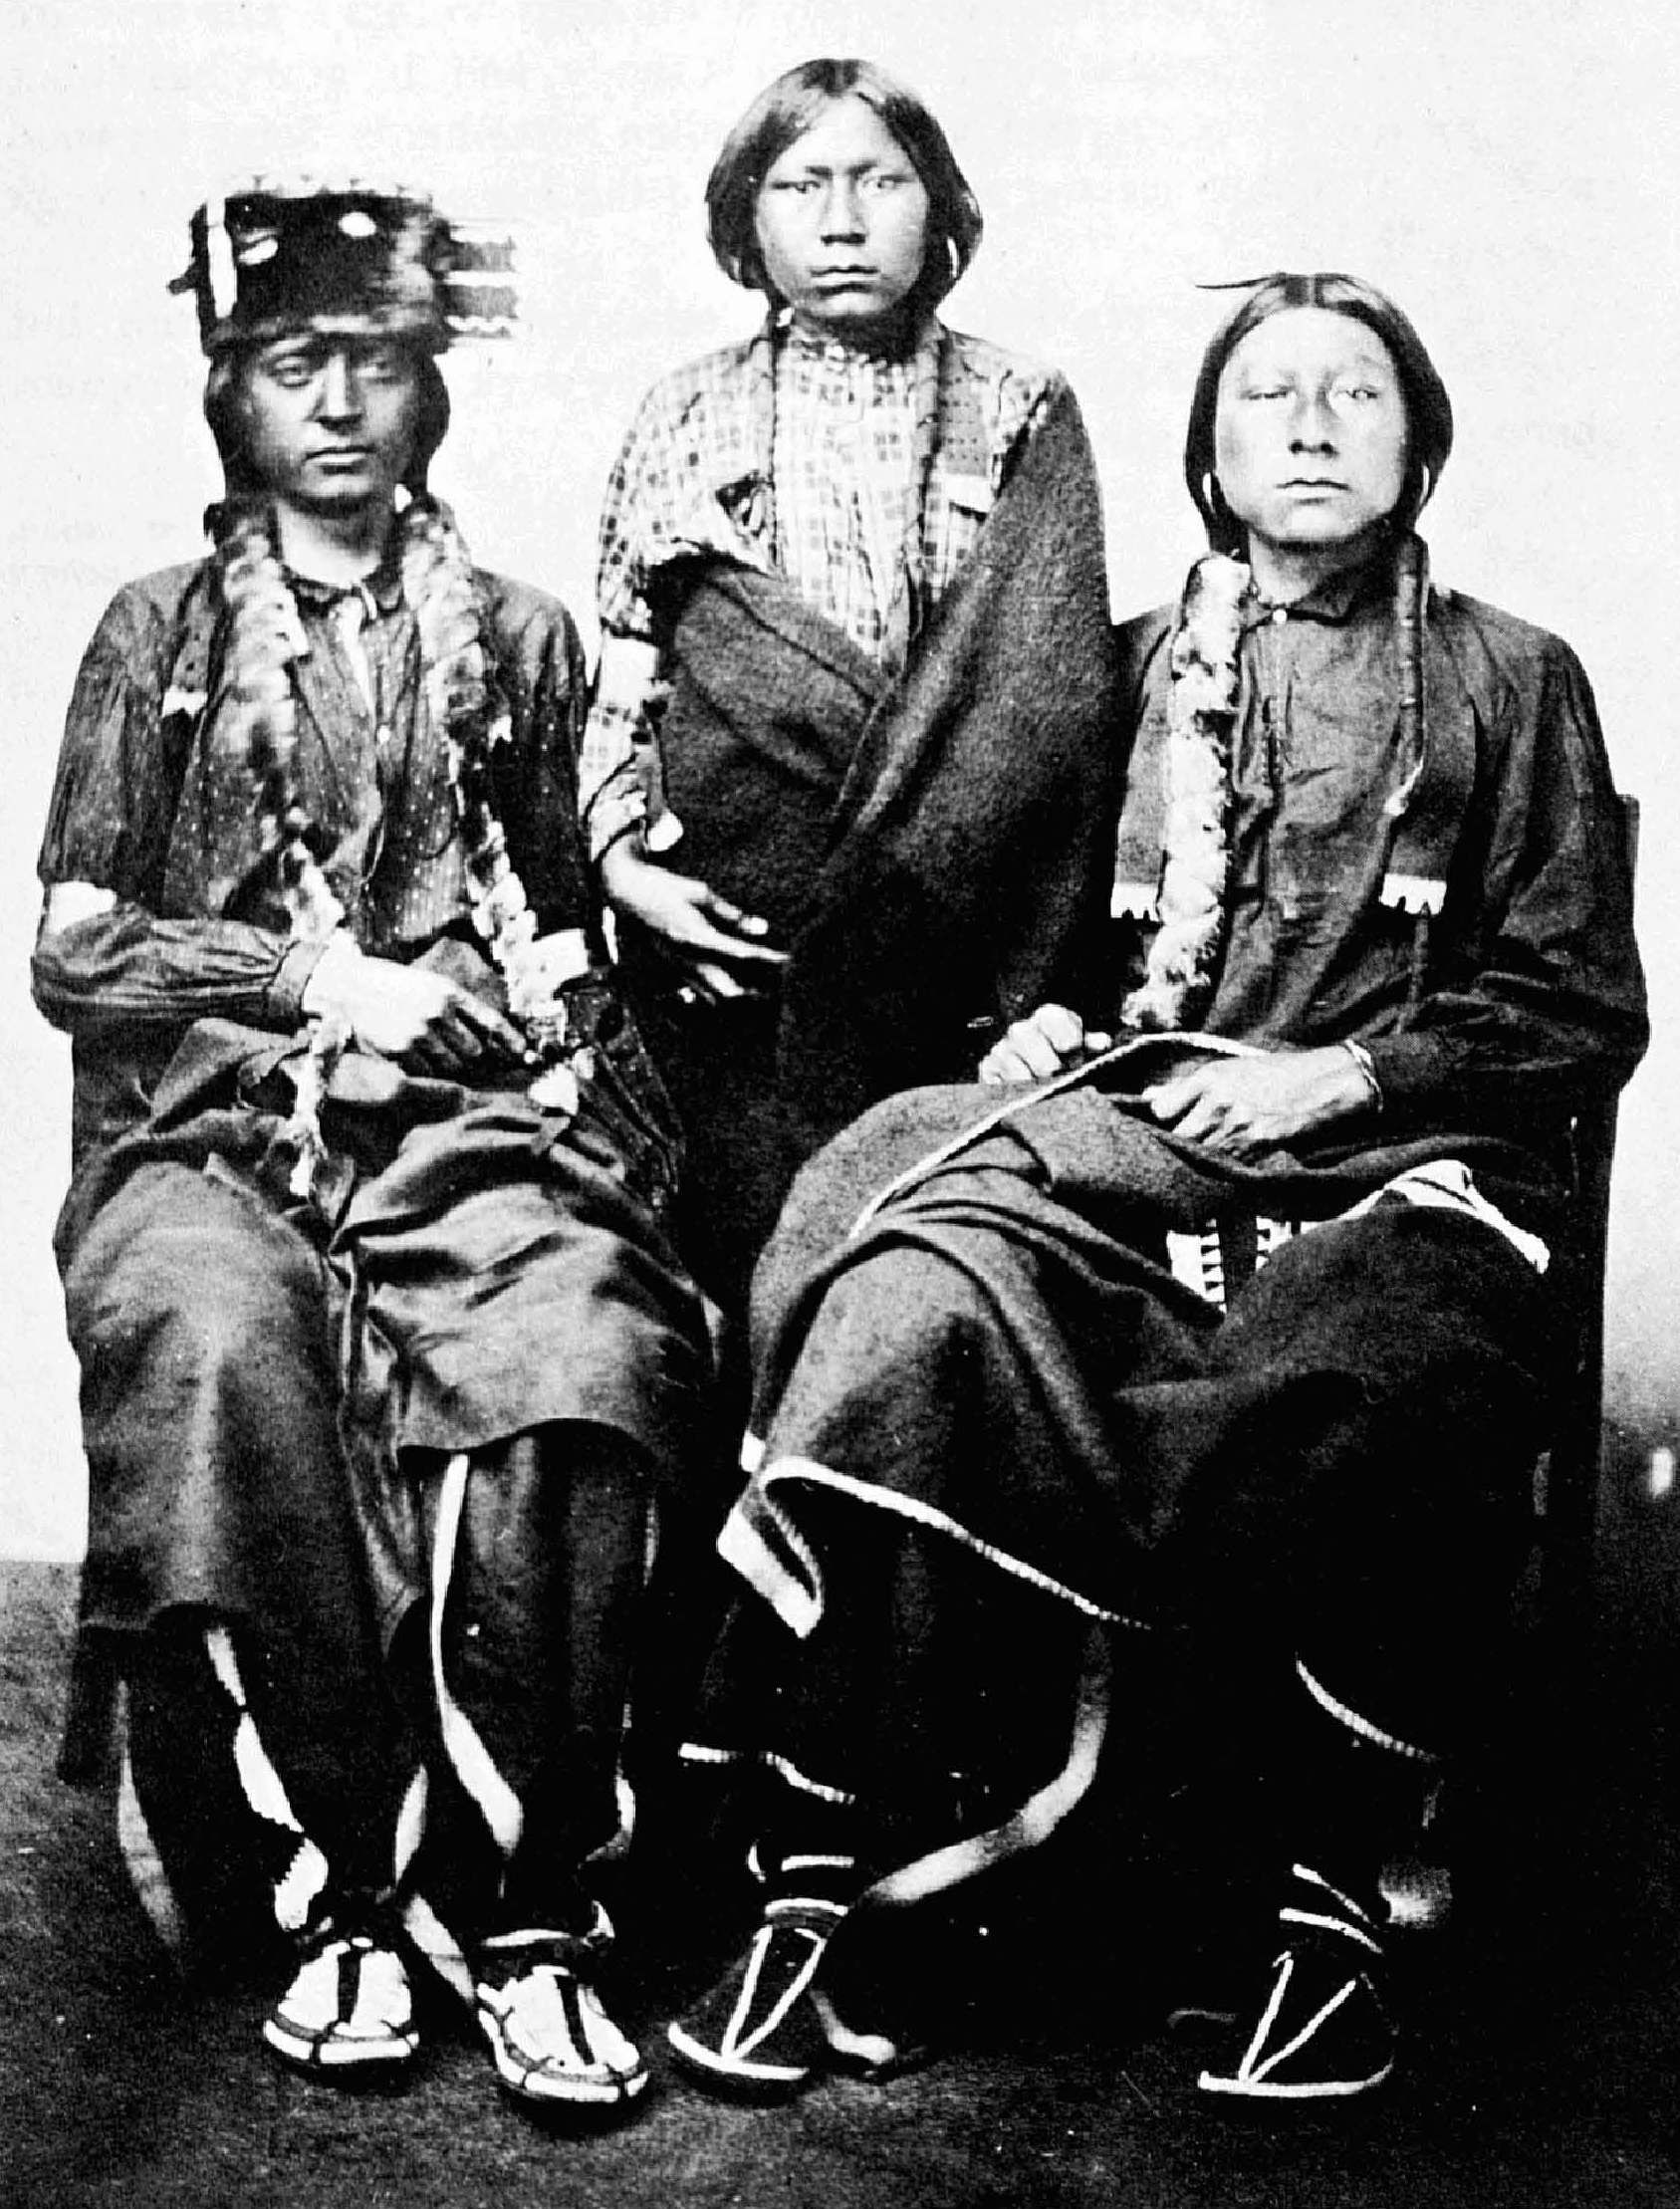 Three Young Men Arapaho By William Stinson Soule With